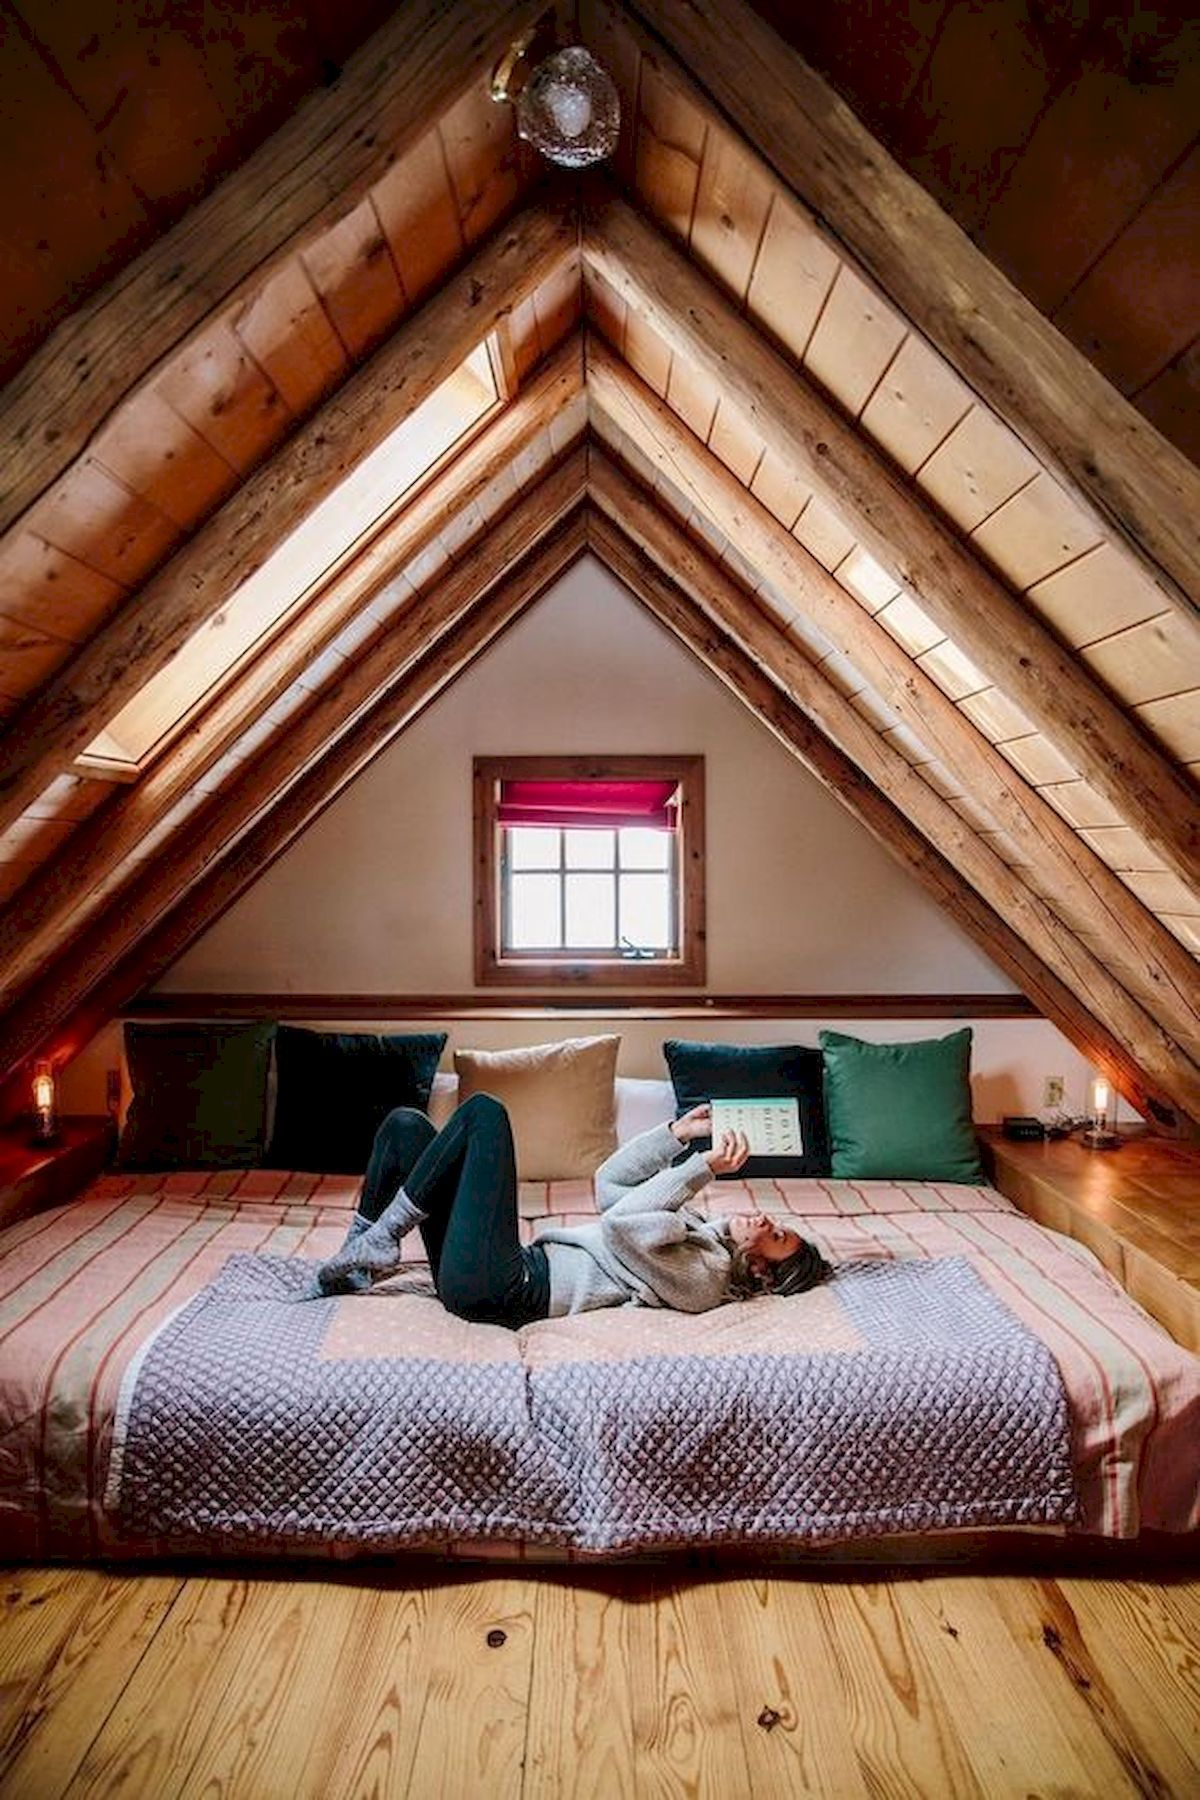 40 Beautiful Attic Bedroom Design And Decorating Ideas Attic Beautiful Be In 2020 Dachgeschoss Schlafzimmer Schlafzimmer Im Dachgeschoss Dachboden Schlafzimmer Ideen